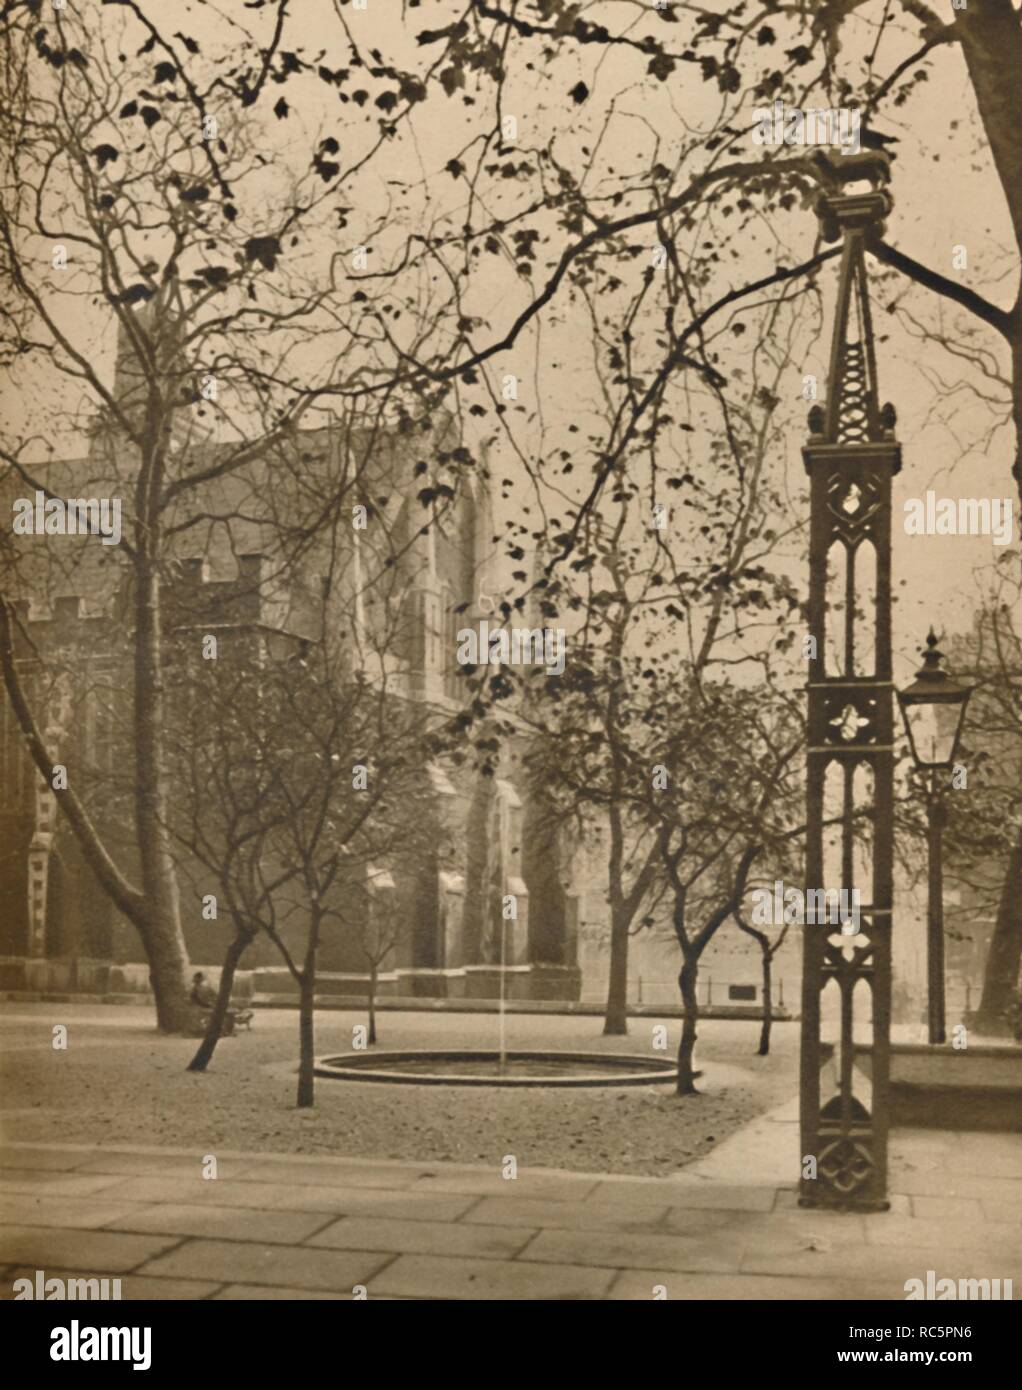 """'Middle Temple Hall and the Quietude of Fountain Court', c1935. Middle Temple is one of the four Inns of Court in London. From """"Wonderful London, Volume 1"""", edited by St. John Adcock. [The Fleetway House, London, c1935] - Stock Image"""